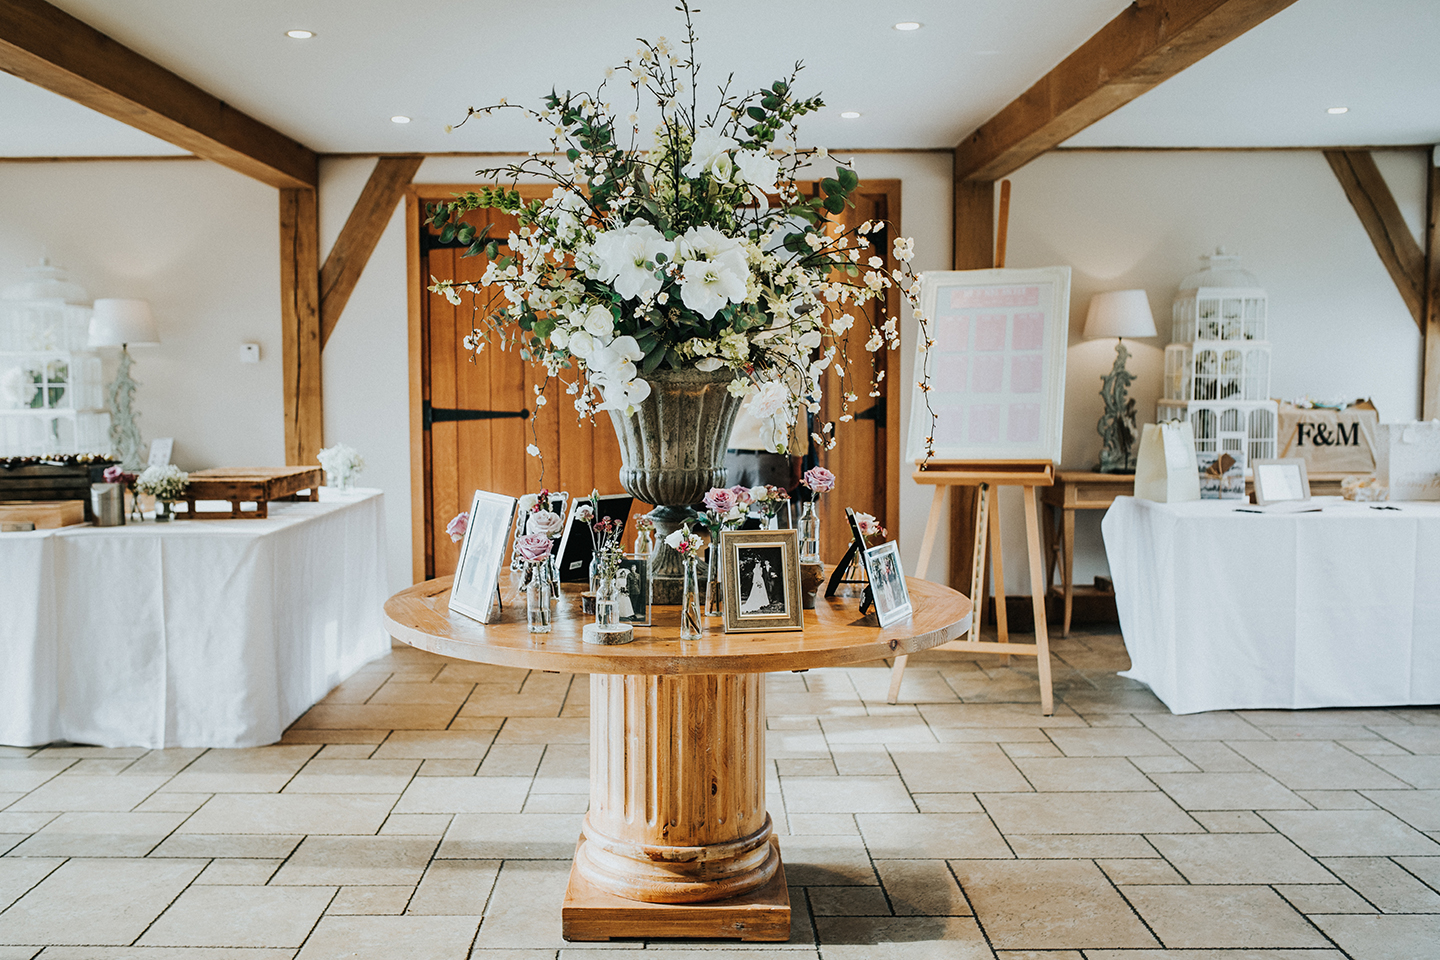 A table is decorated with white wedding flowers and personal touches for a spring wedding at Bassmead Manor Barns